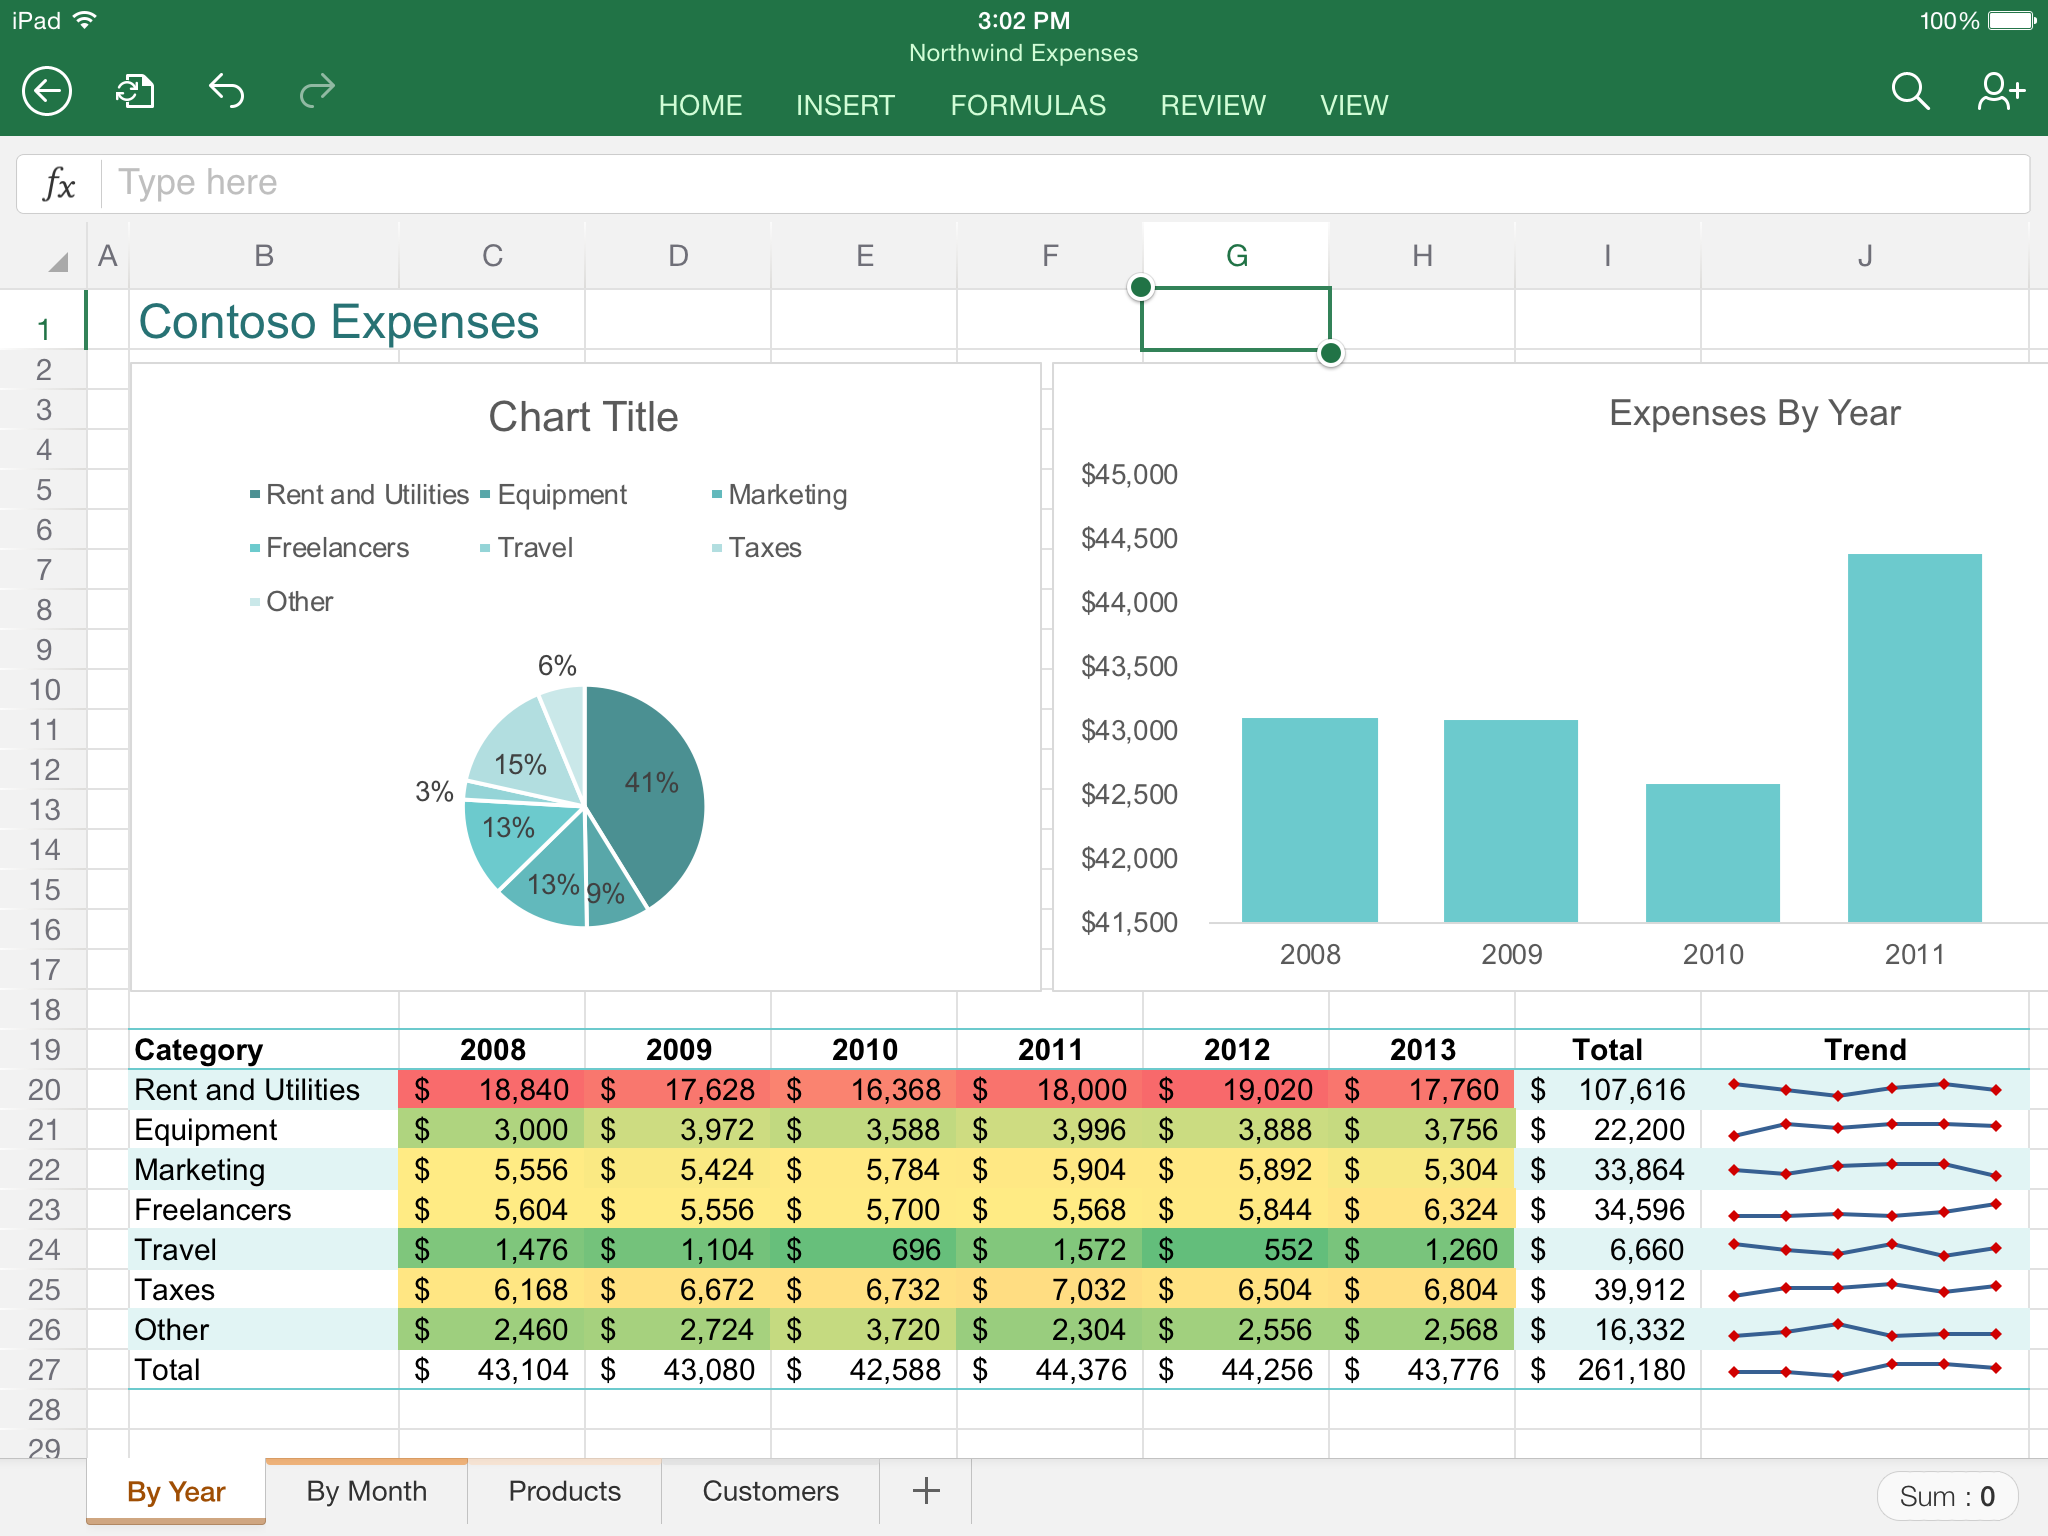 Ediblewildsus  Mesmerizing App Highlight Excel  Mobile Digital Now With Engaging Excel In Action With Amusing Excel Multiple If Conditions Also How To Create A Waterfall Chart In Excel In Addition Auto Date In Excel And Adding Rows In Excel As Well As Excel Compare Two Sheets Additionally Linear Programming Excel From Youstonybrookedu With Ediblewildsus  Engaging App Highlight Excel  Mobile Digital Now With Amusing Excel In Action And Mesmerizing Excel Multiple If Conditions Also How To Create A Waterfall Chart In Excel In Addition Auto Date In Excel From Youstonybrookedu